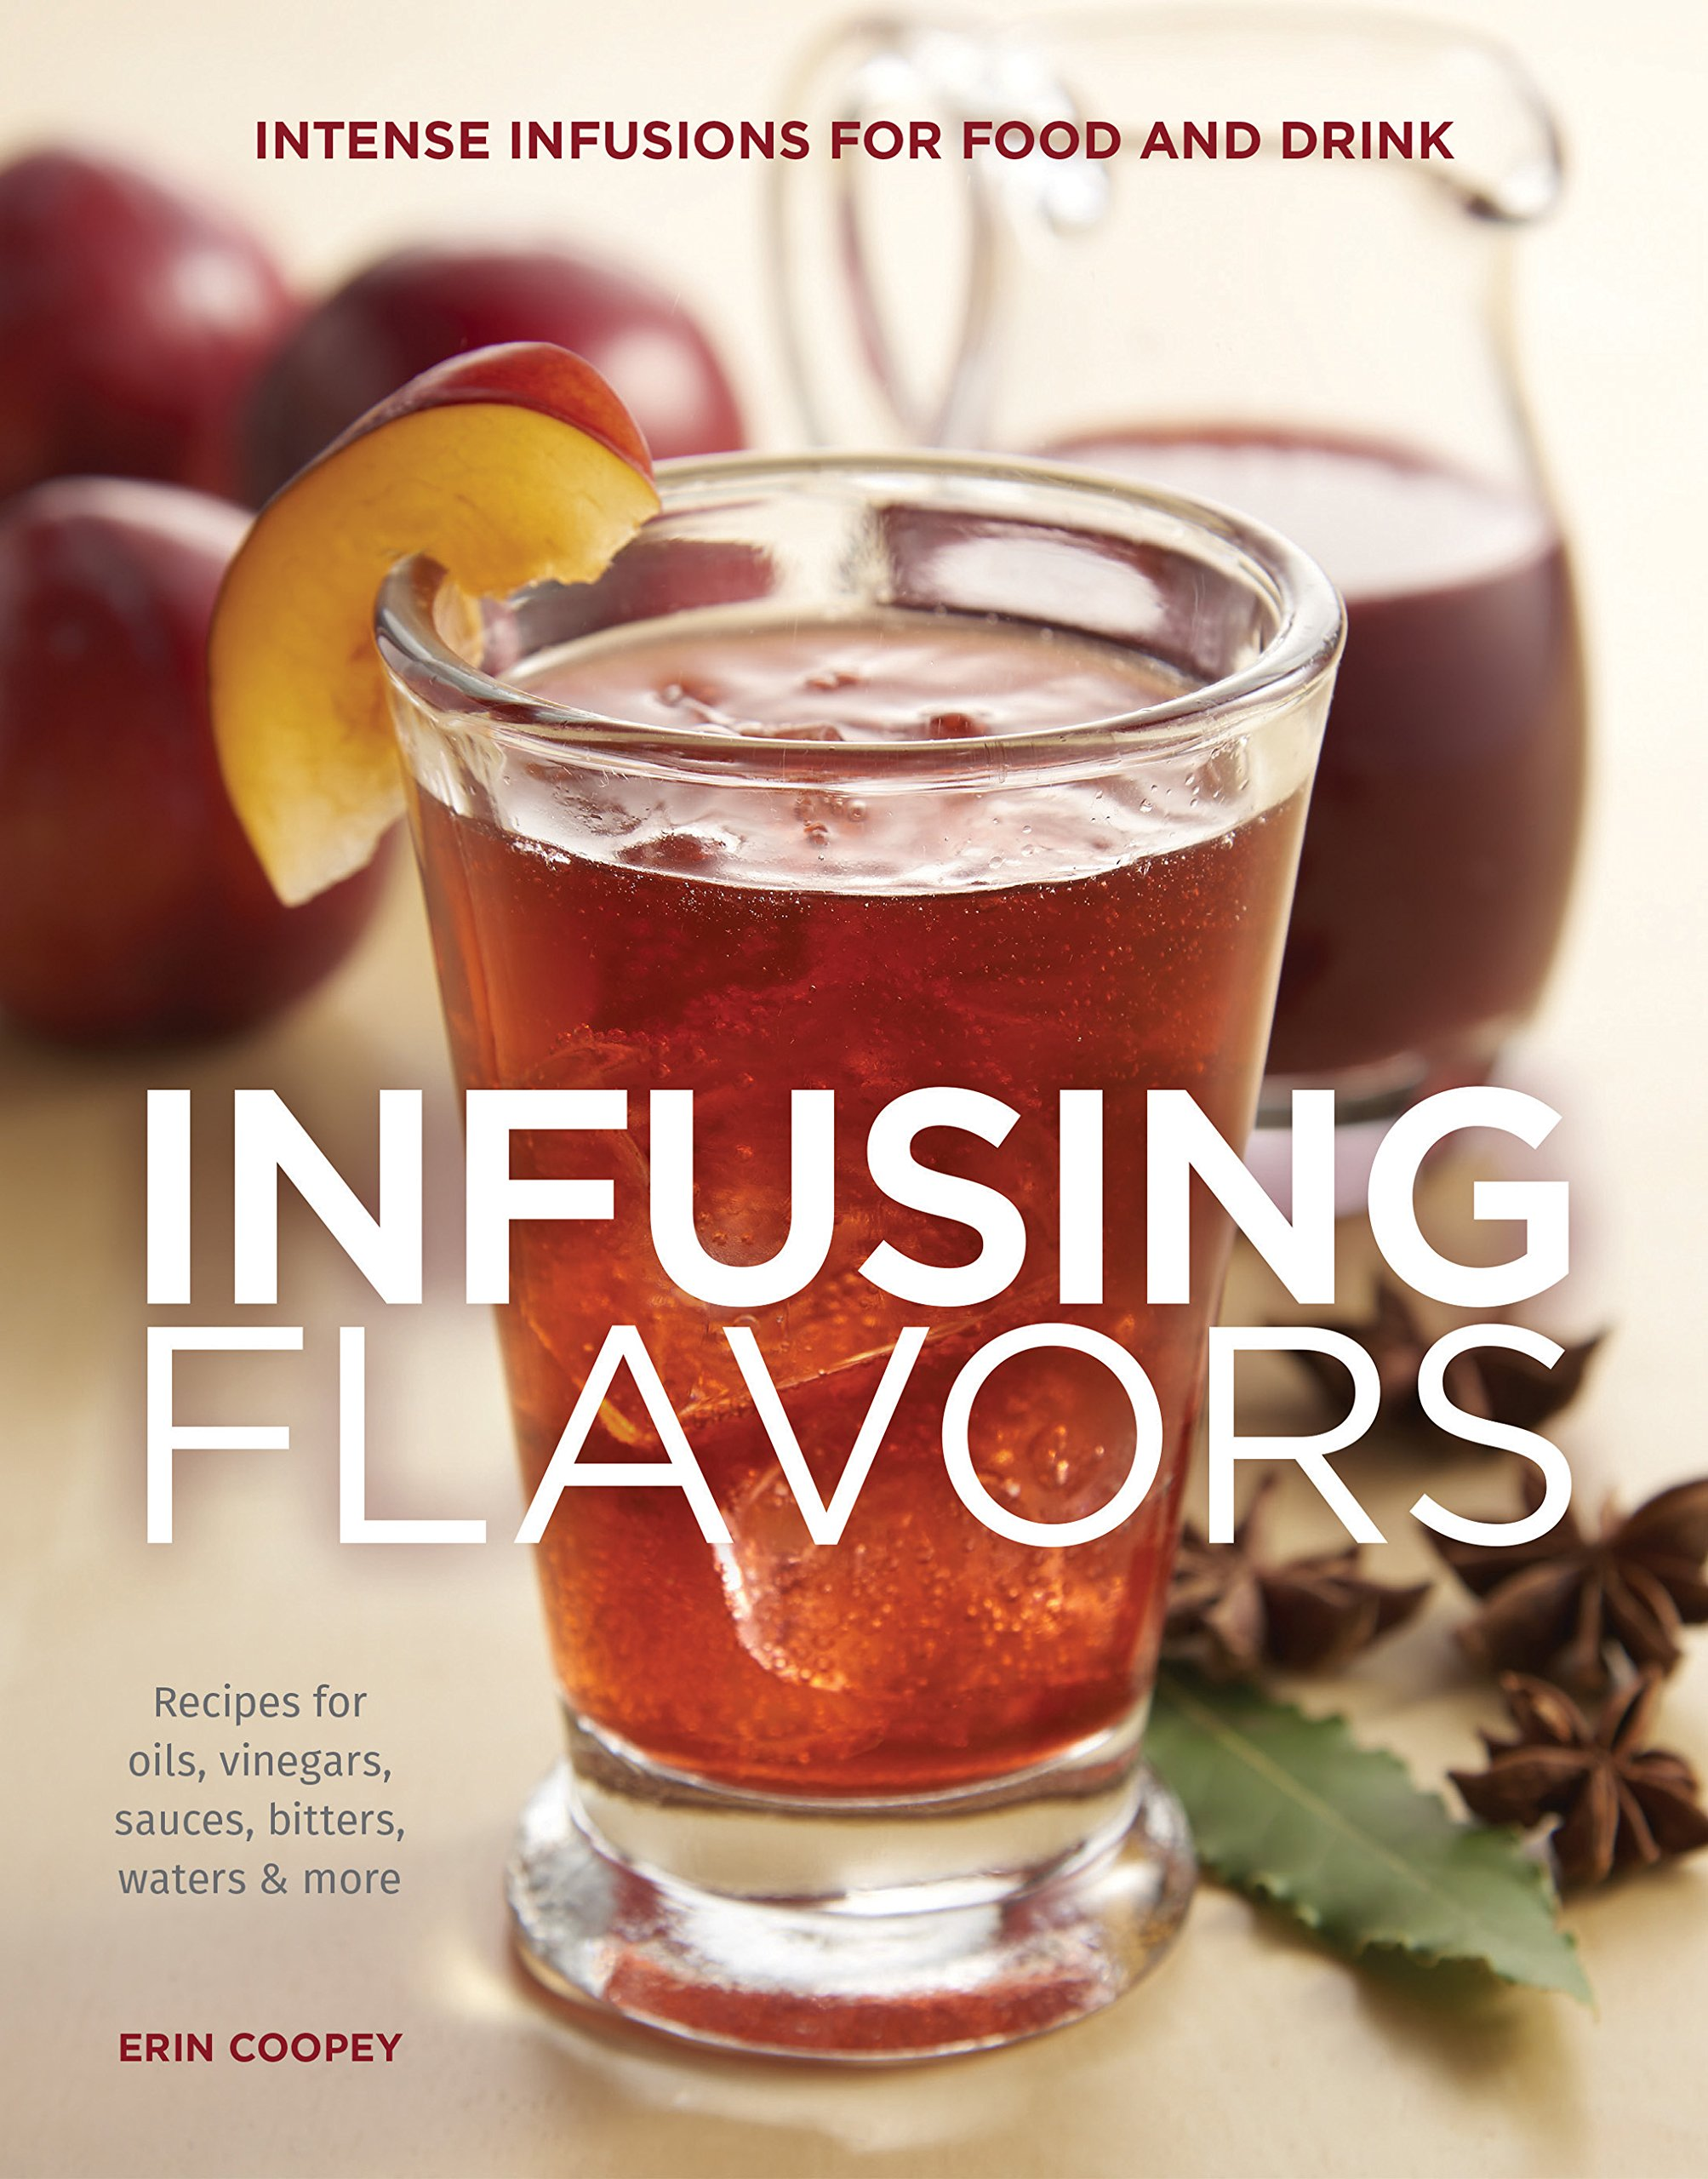 Download Infusing Flavors: Intense Infusions for Food and Drink: Recipes for oils, vinegars, sauces, bitters, waters & more PDF